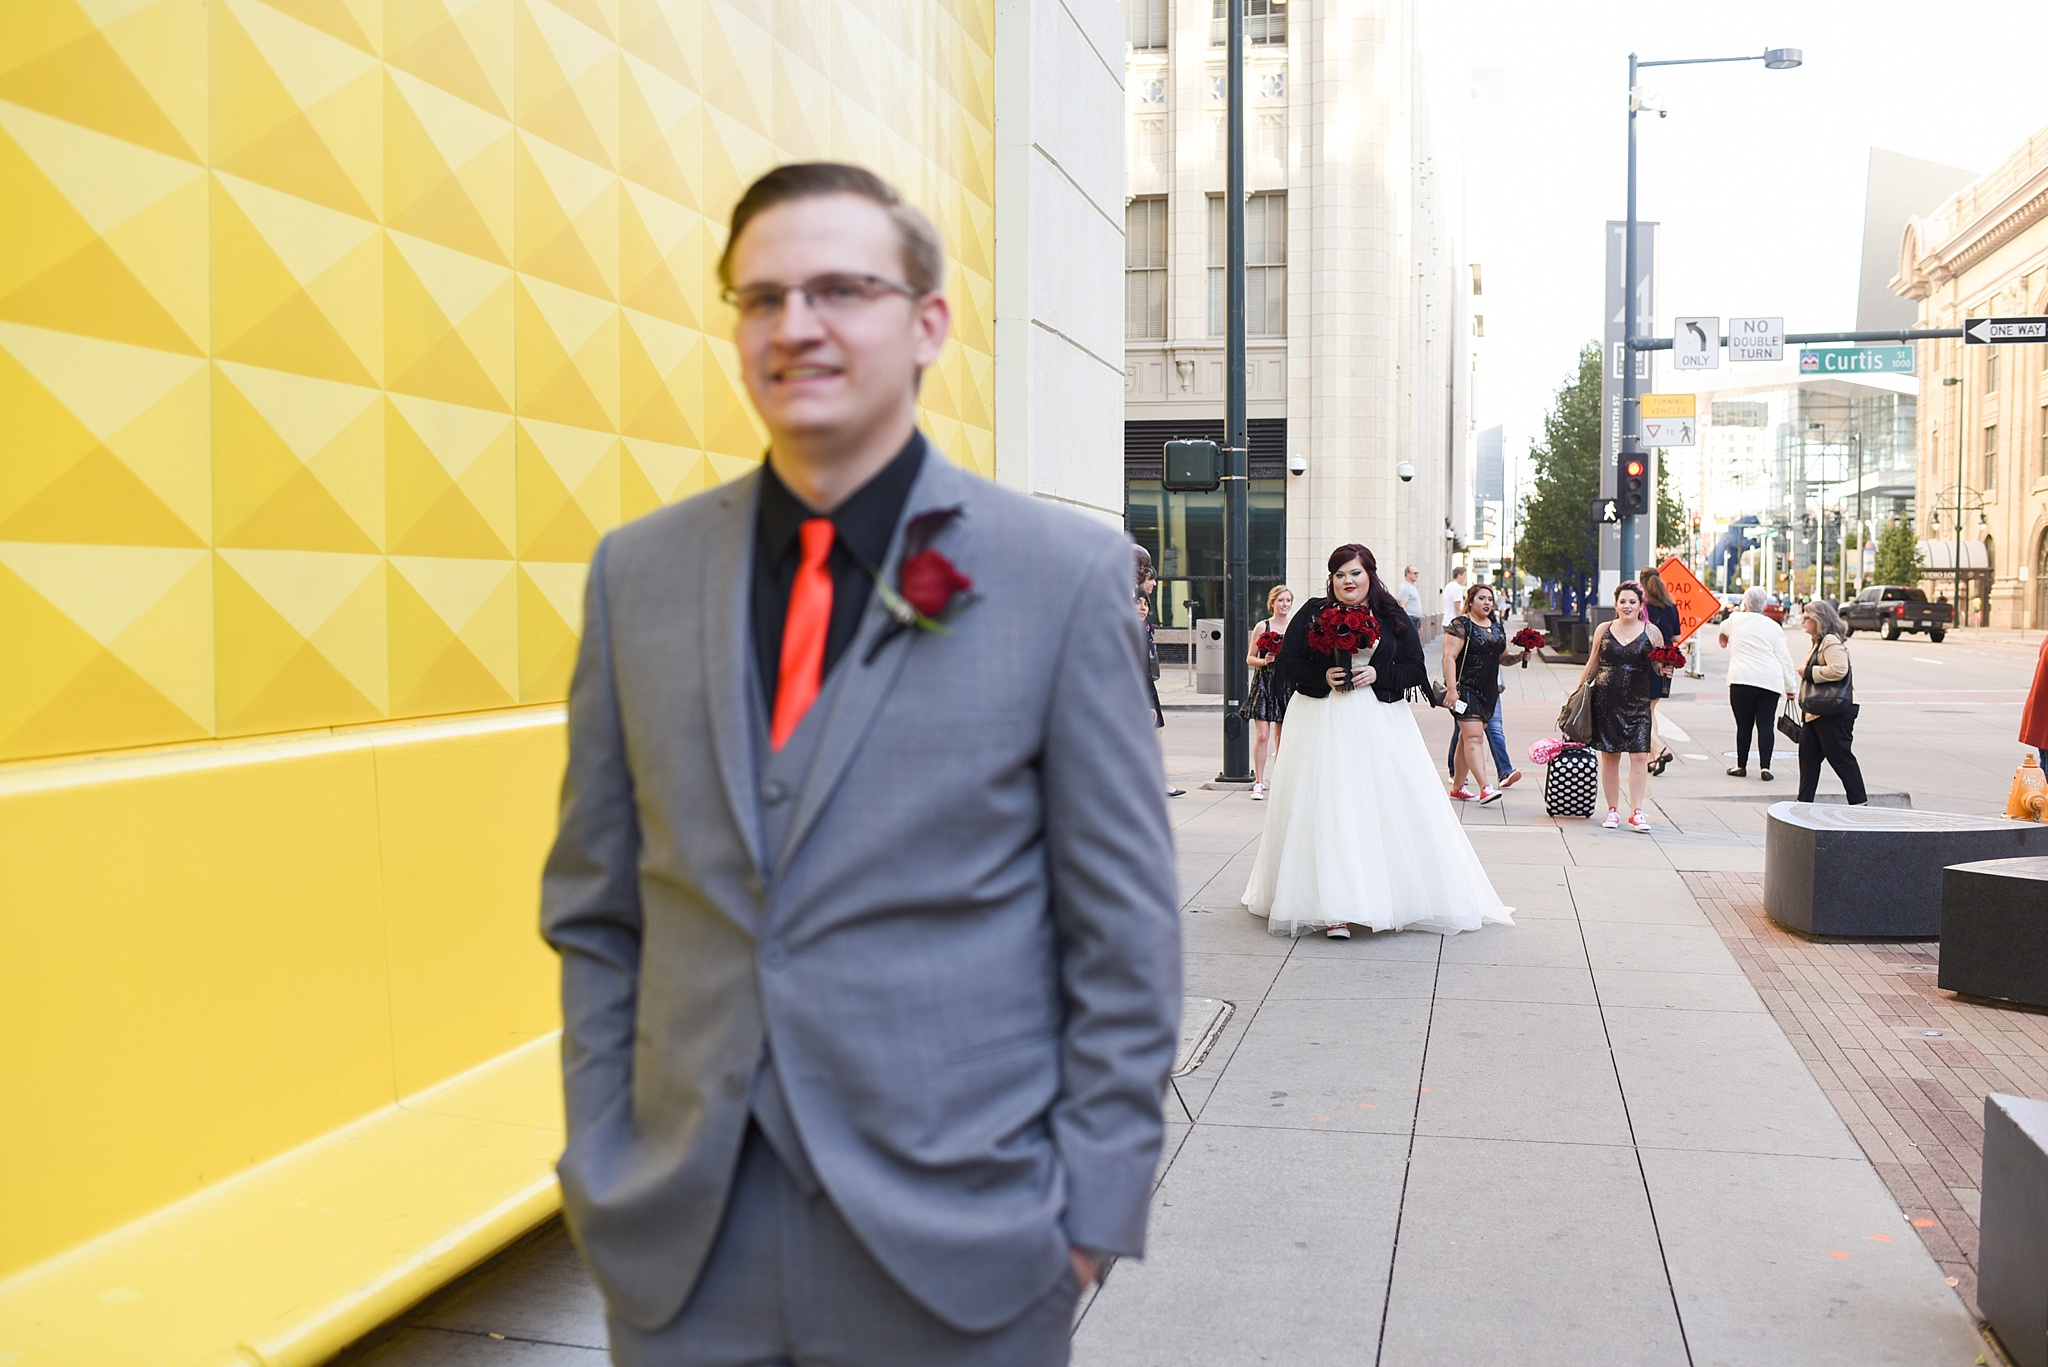 Alecia & Nick's Rock 'N Roll Themed Wedding at The Studios at Overland Crossing, The Studios at Overland Crossing, The Studios, Overland Crossing, Denver Wedding Photographer, Denver Wedding, Downtown Denver Wedding, Yellow Wall, Rock N Roll Wedding, Rock Wedding, First Look, Yellow Wall Downtown Denver, Curtis Hotel Yellow Wall